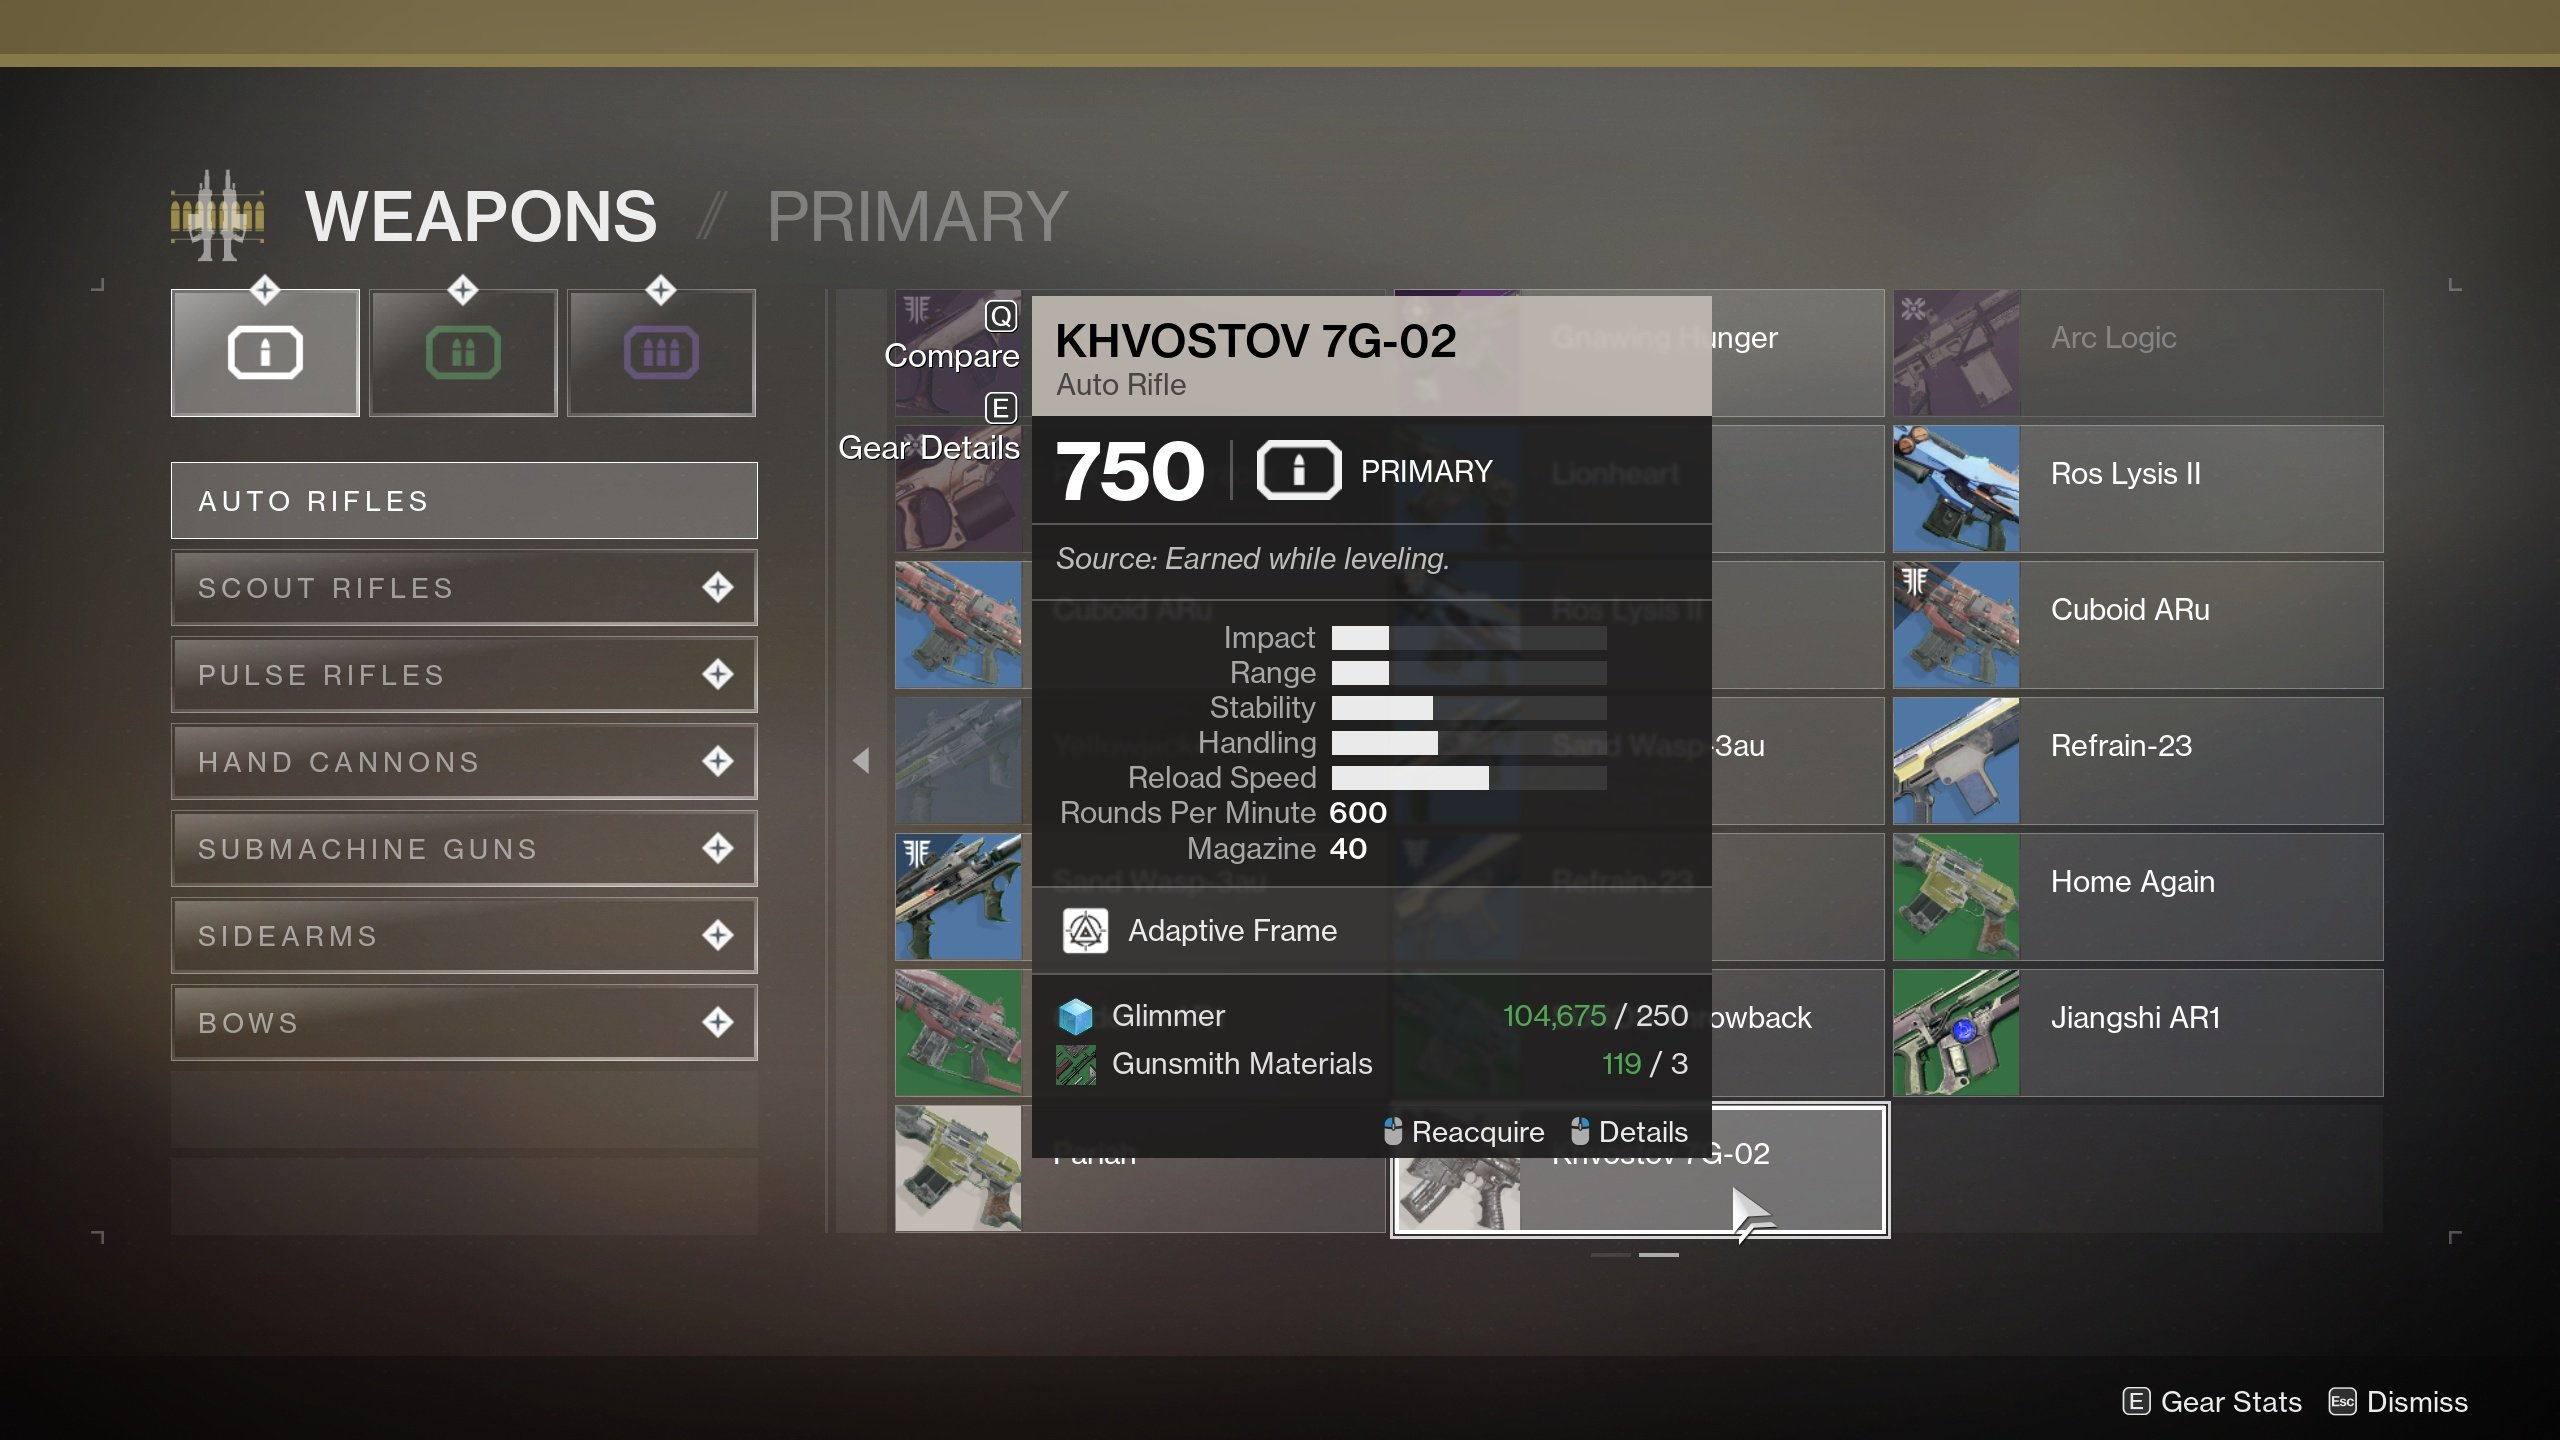 How to get the Khvostov 7G-02 in Destiny 2 - From Collections